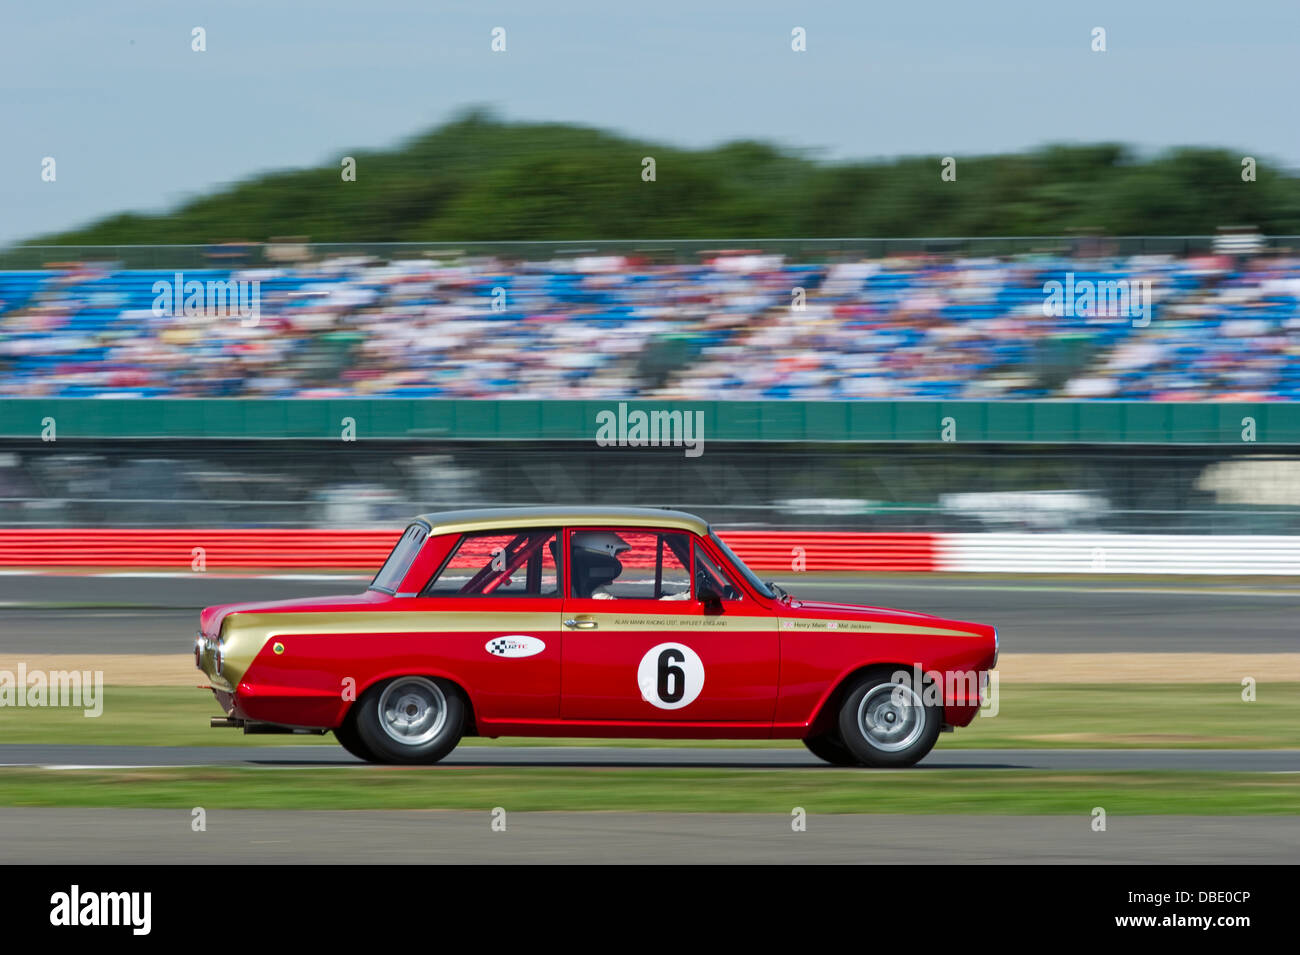 Henry Mann & Anthony Reid in a Ford Lotus Cortina during the 2013 Silverstone Classic Under 2 Litre Touring - Stock Image